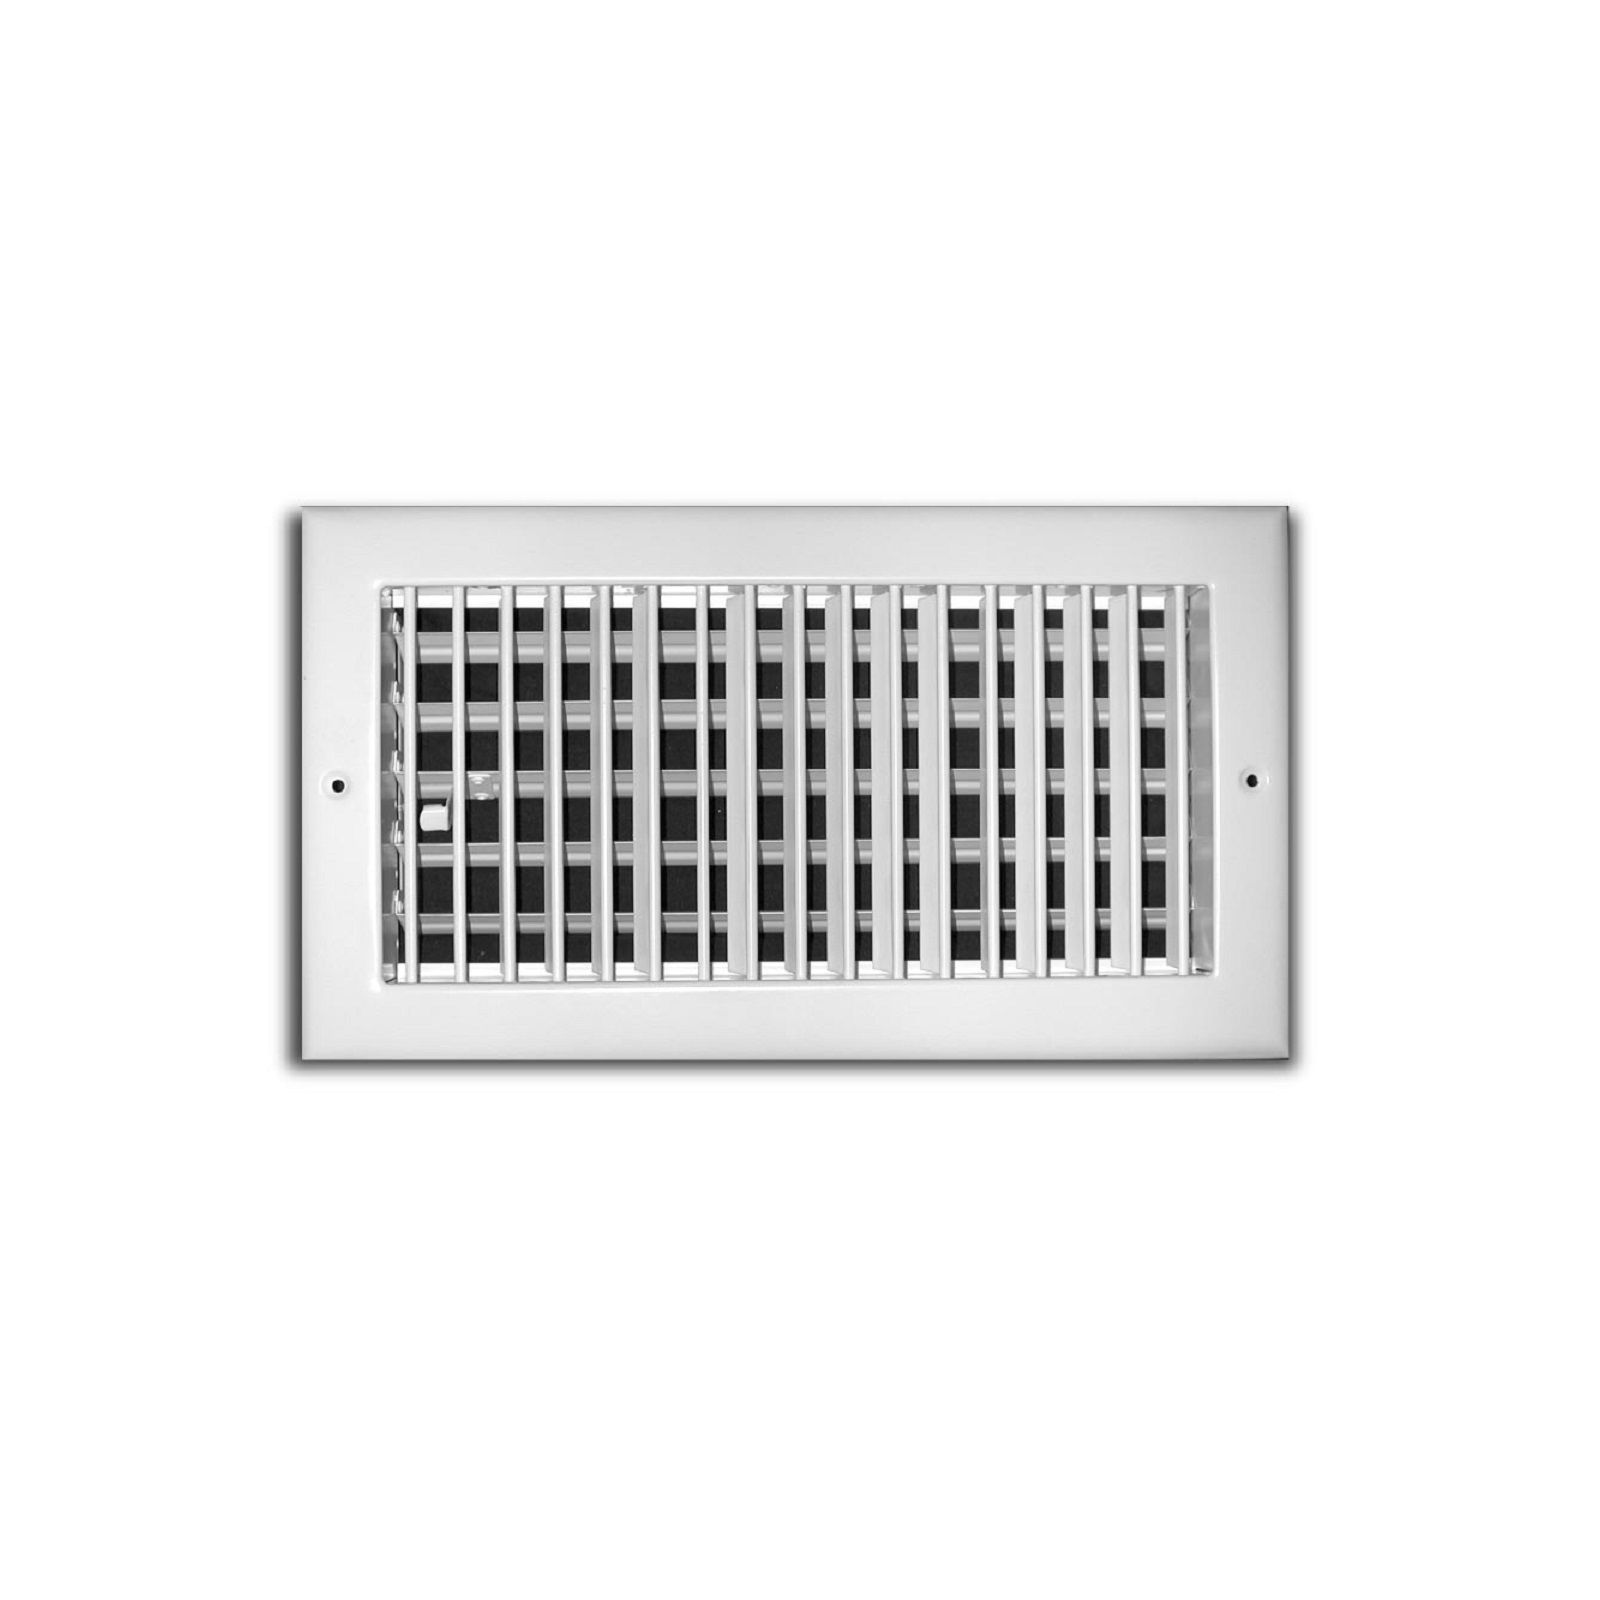 "TRUaire 210VM 20X08 - Steel Adjustable 1-Way Wall/Ceiling Register With Multi Shutter Damper, White, 20"" X 08"""